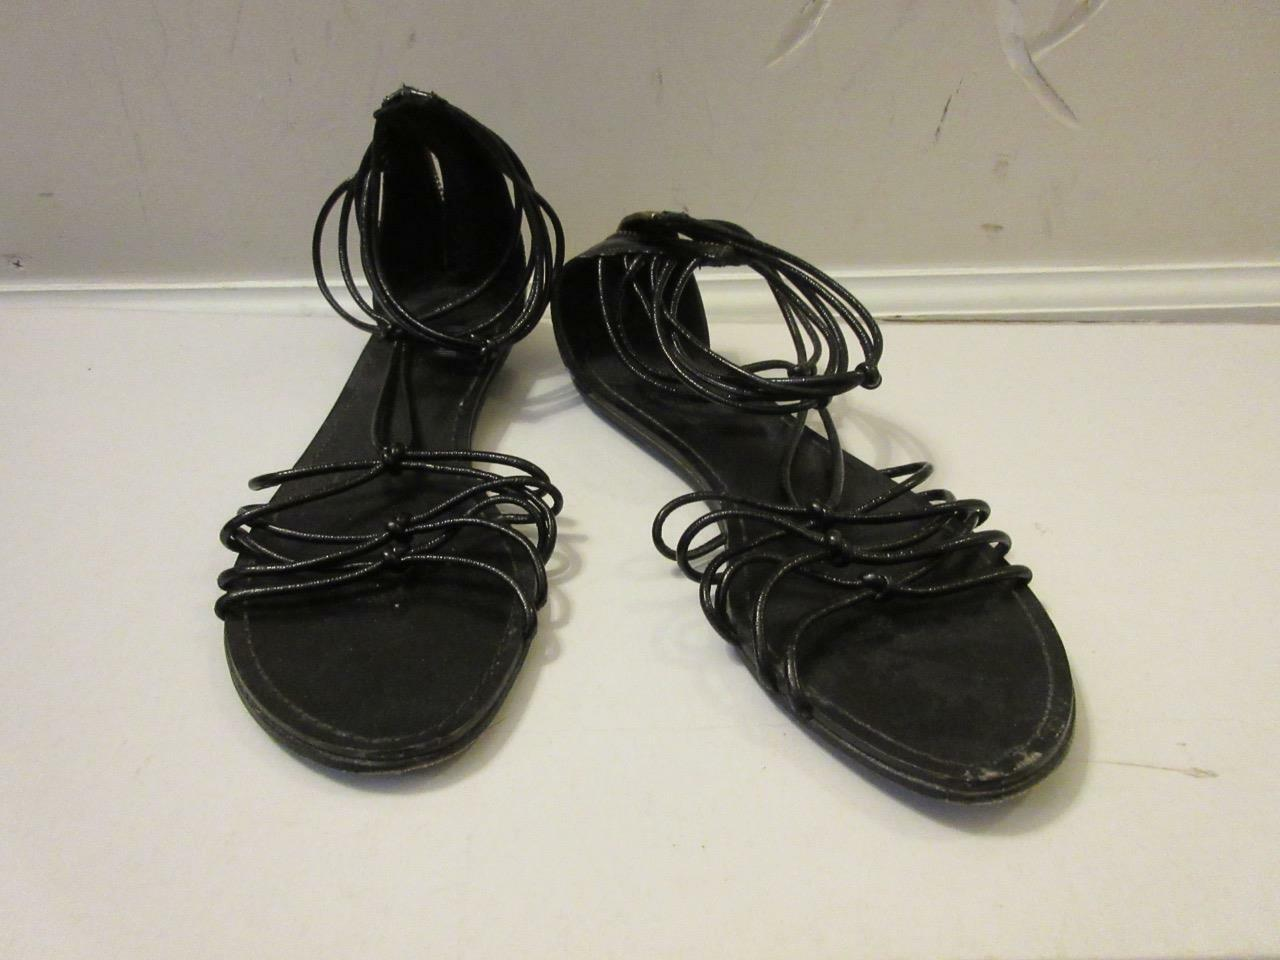 WOMENS BELLE ZIP-UP BY SIGERSON MORRISON BLACK STRAPY ZIP-UP BELLE SANDALS SIZE 6B 9aa5ec